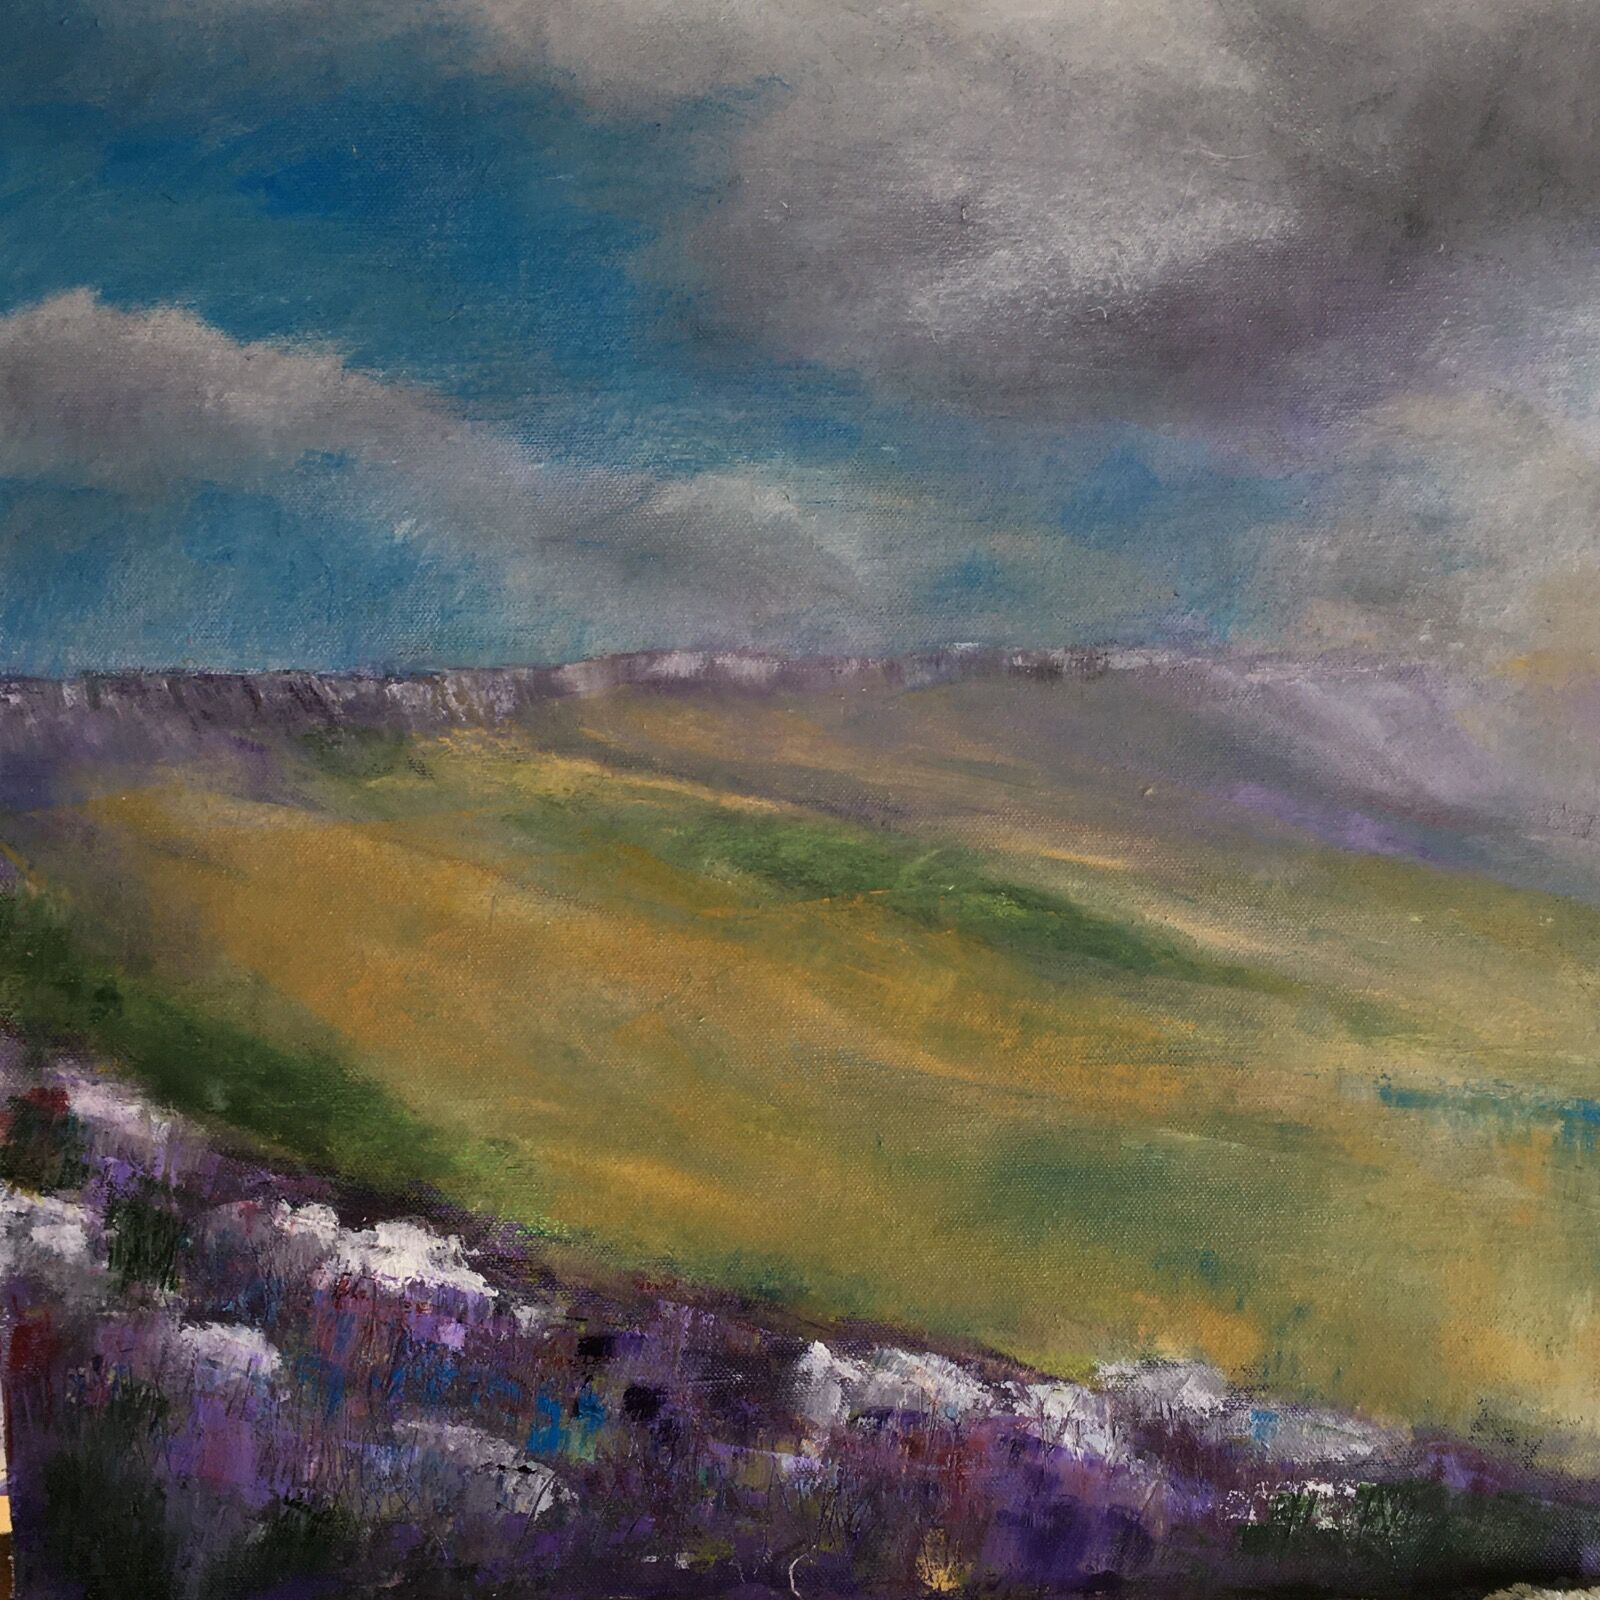 Derbyshire edge painting